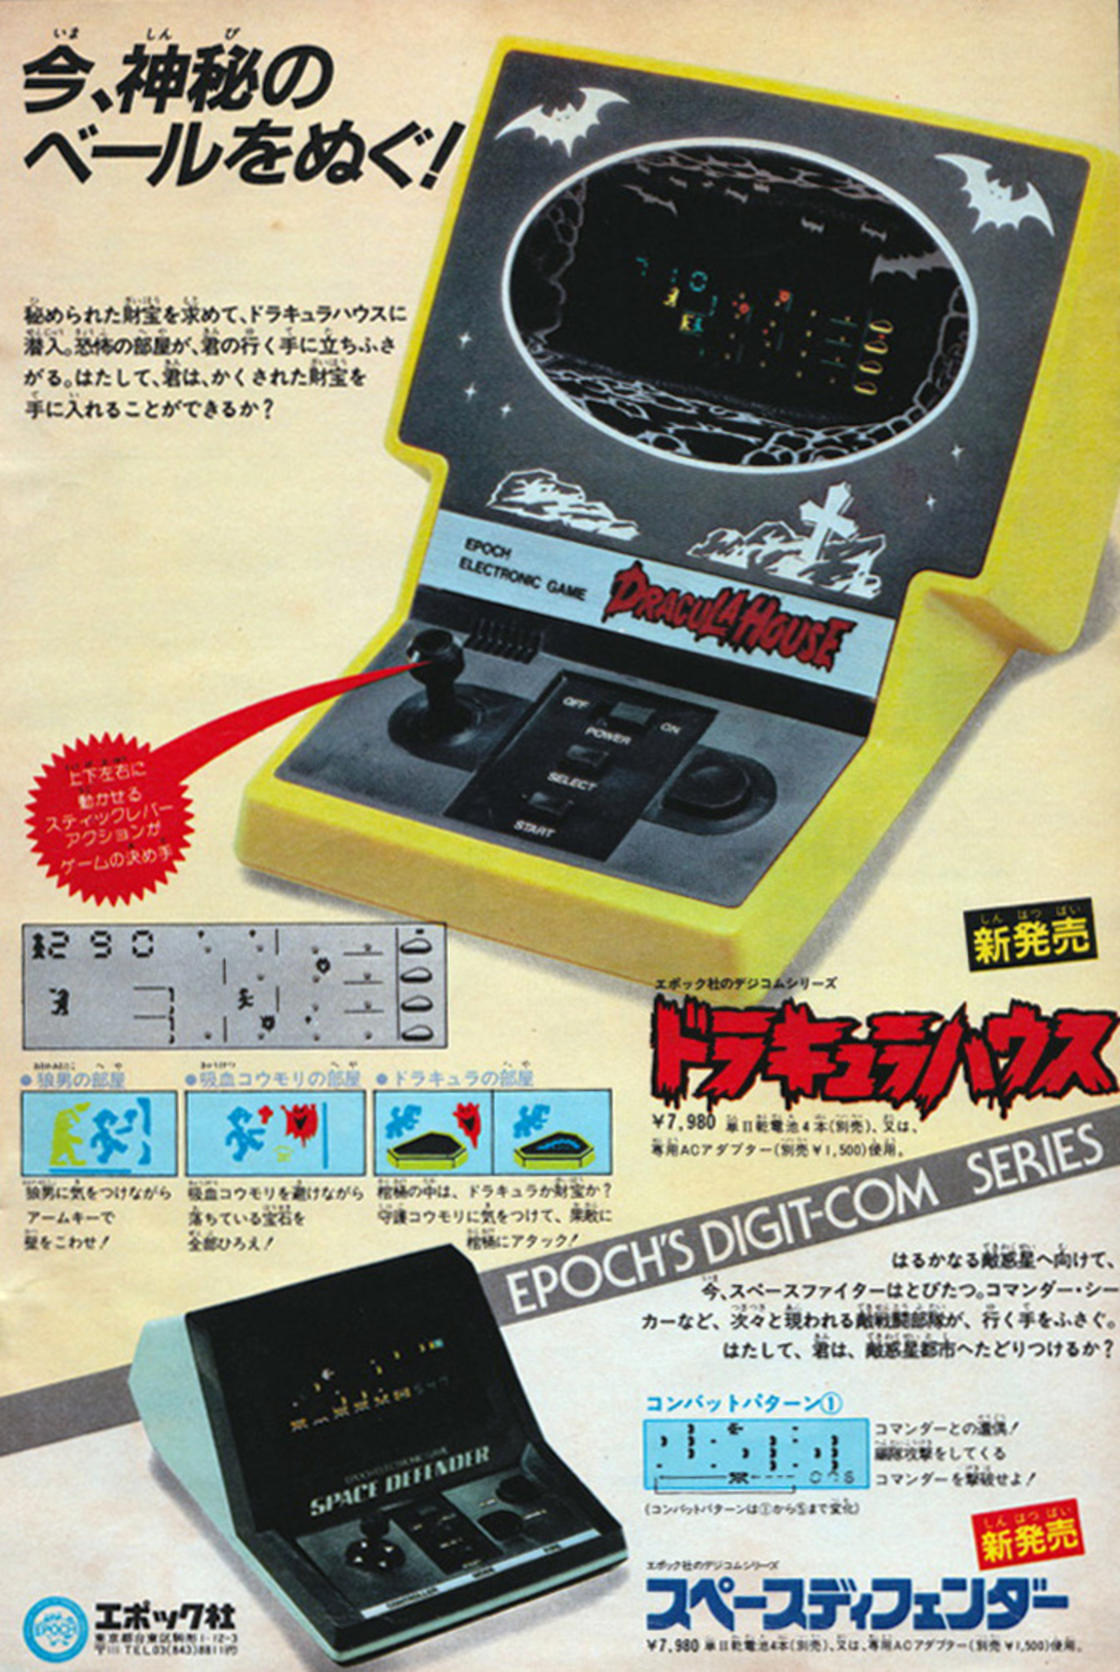 publicites-japonaises-jeux-video-1980-12.jpg